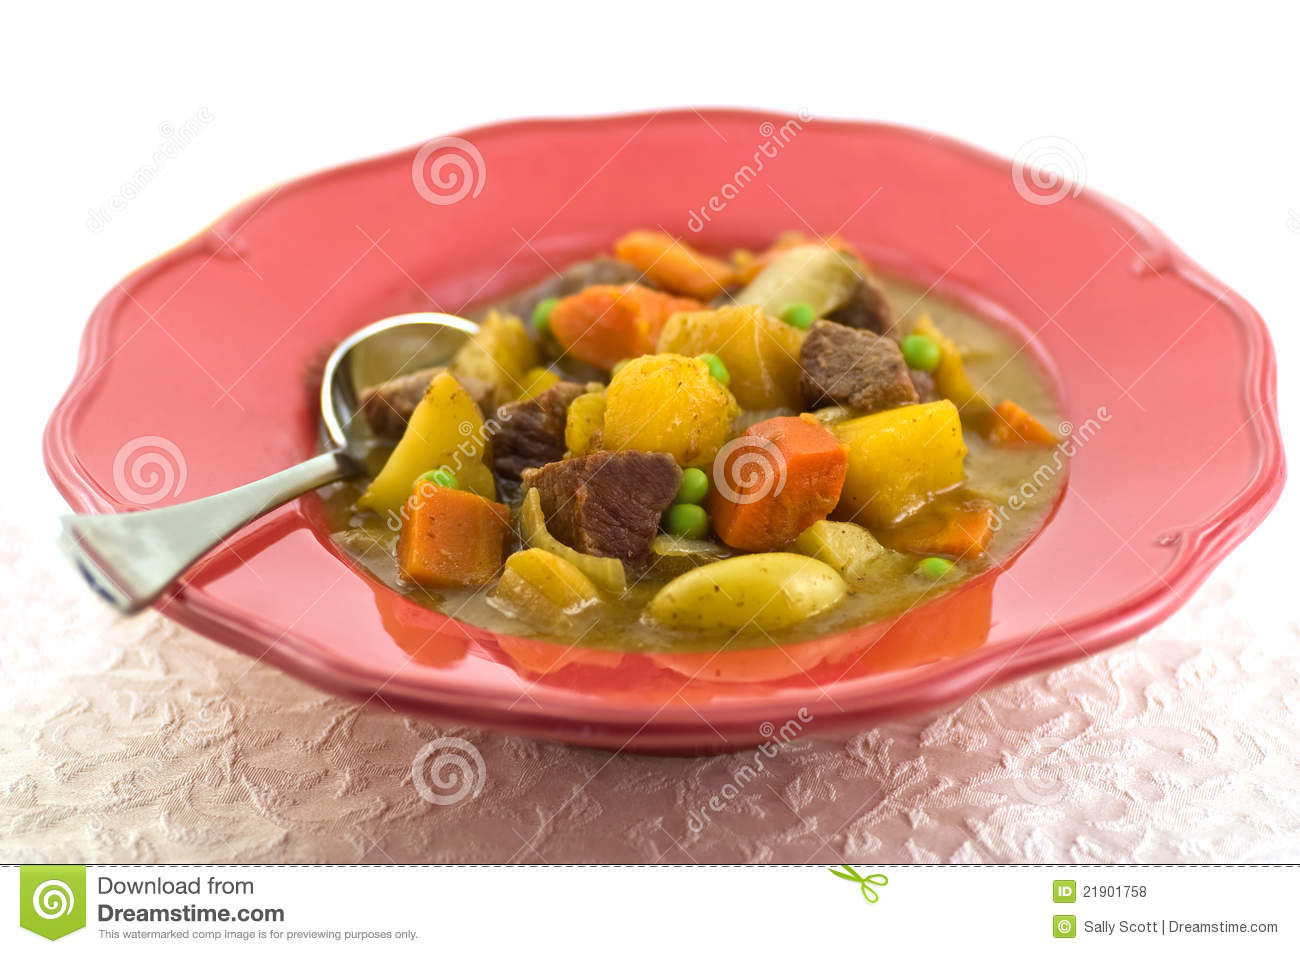 Beef Stew Royalty Free Stock Photos   Image  21901758